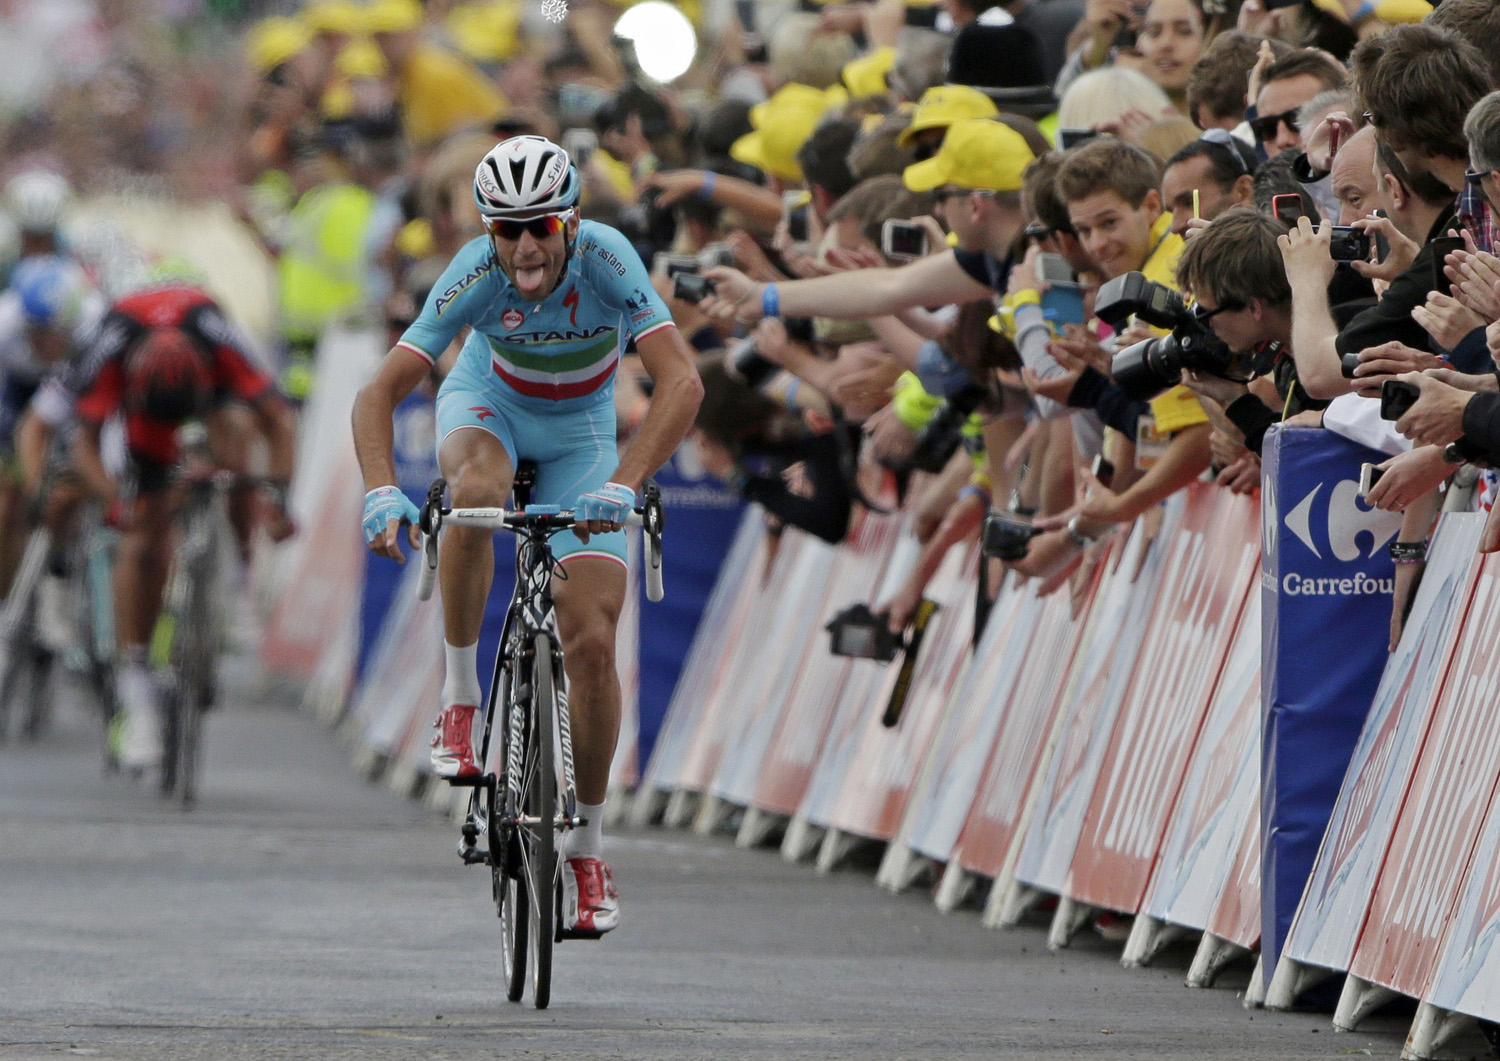 Astana team rider Vincenzo Nibali of Italy celebrates as he crosses the finish line to win  the second 201 km stage of  the Tour de France cycling race from York to Sheffield, France on July 6, 2014.